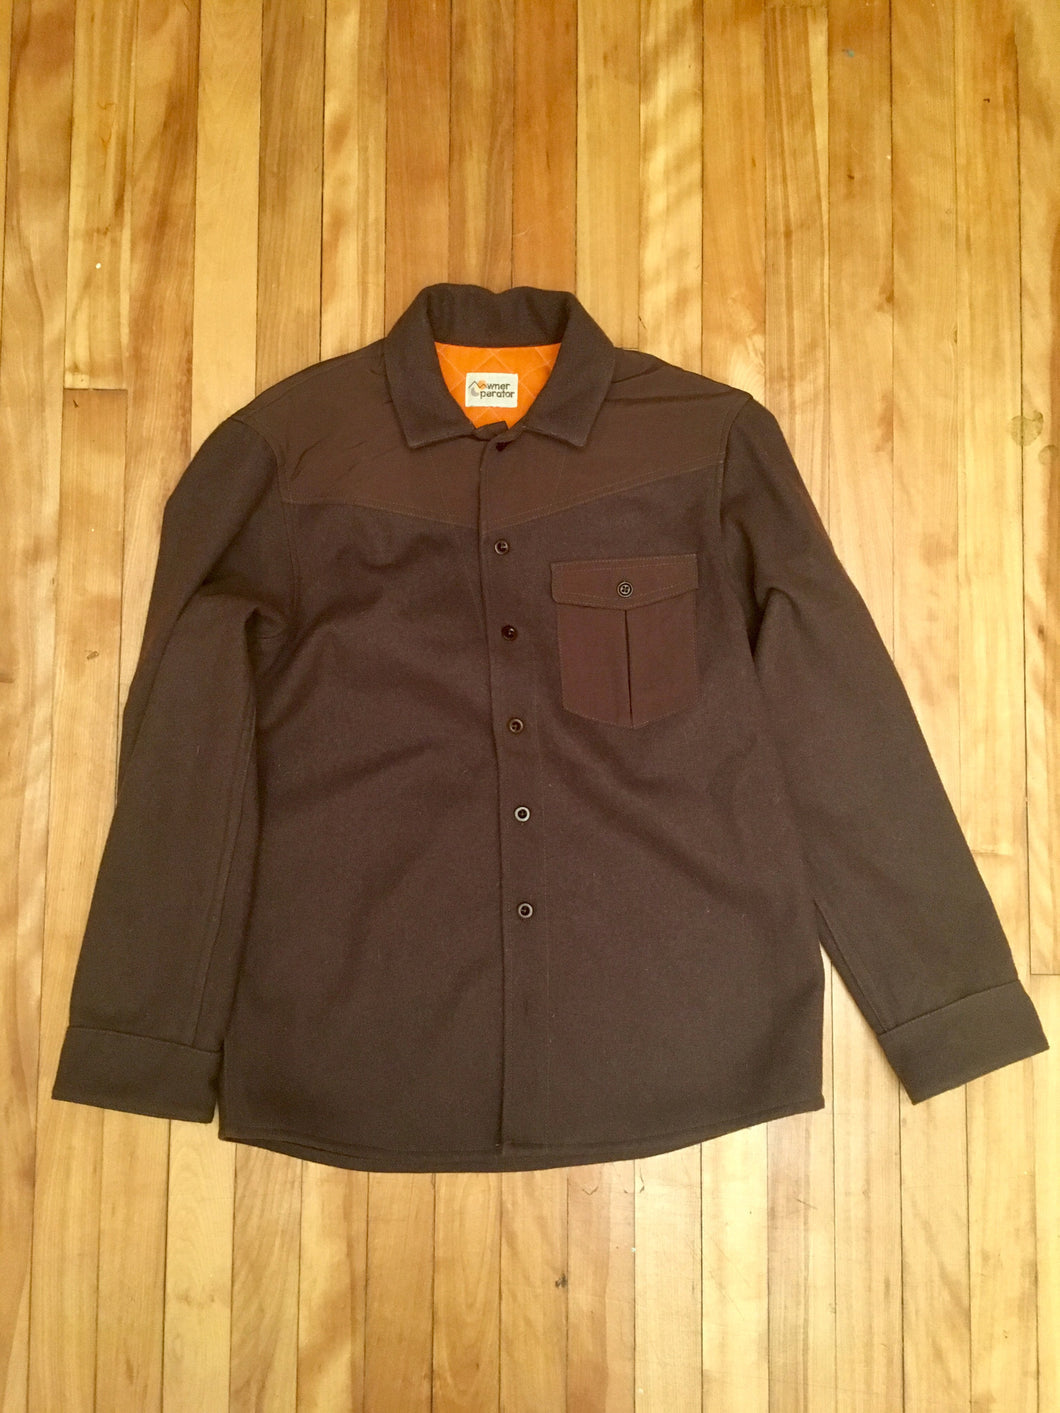 Wrangler Wool shirt (brown)